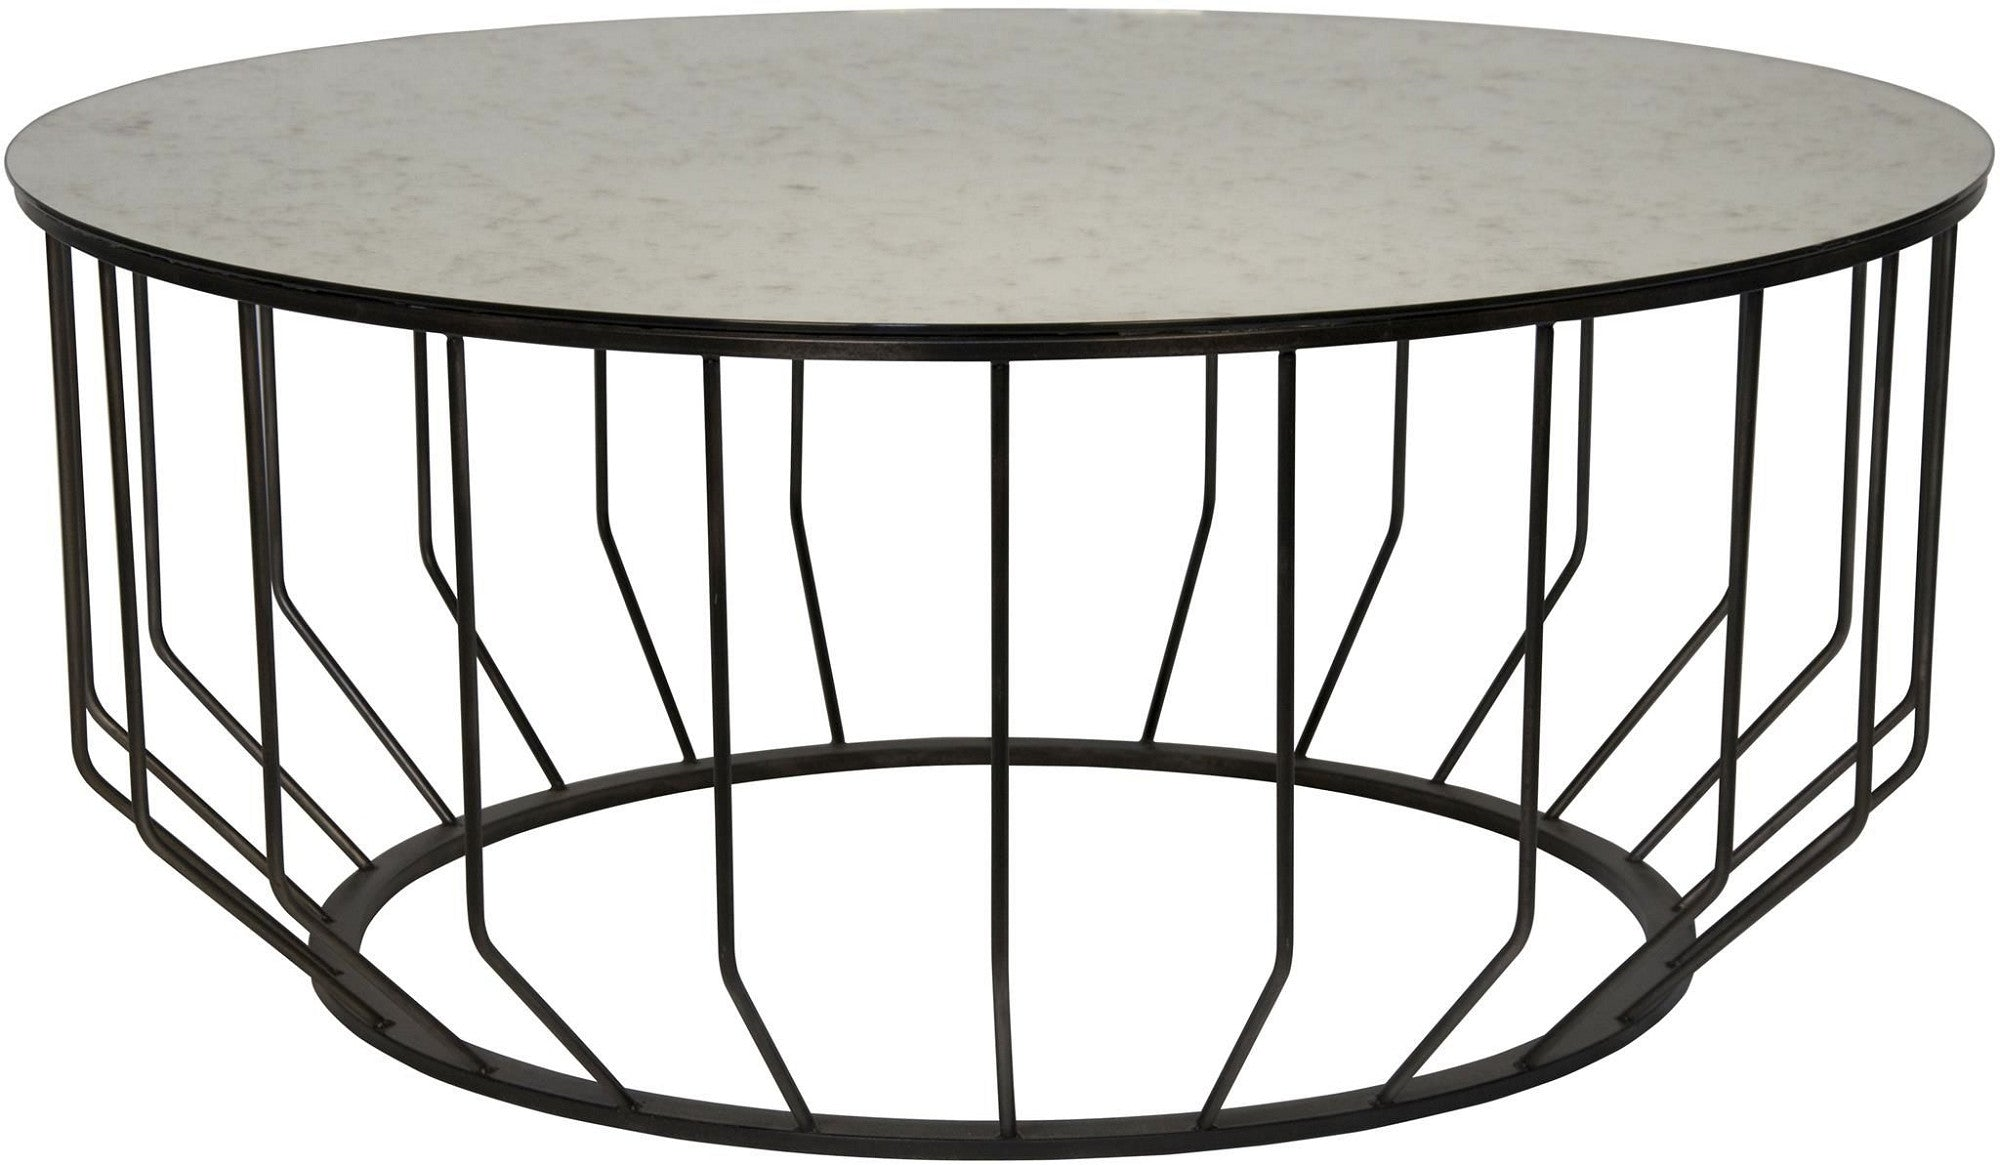 Lux Round Coffee Table- Spoked Metal Base